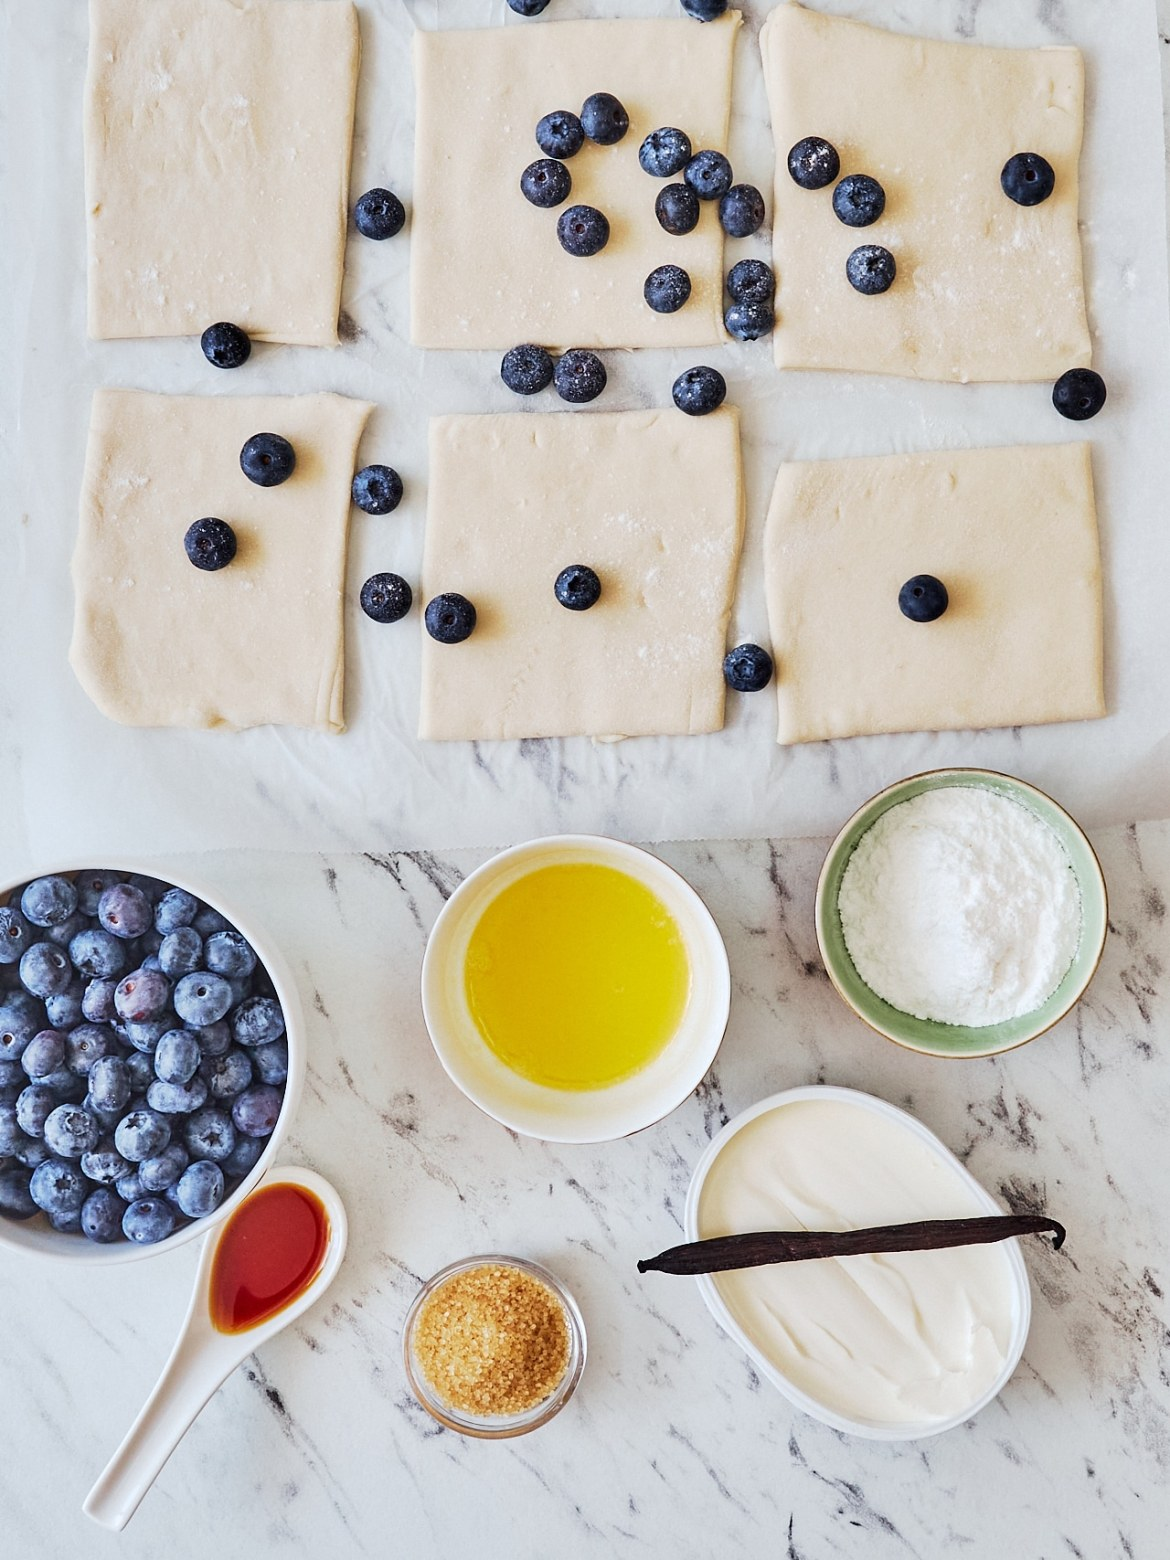 ingredients for cheesecake blueberry muffins